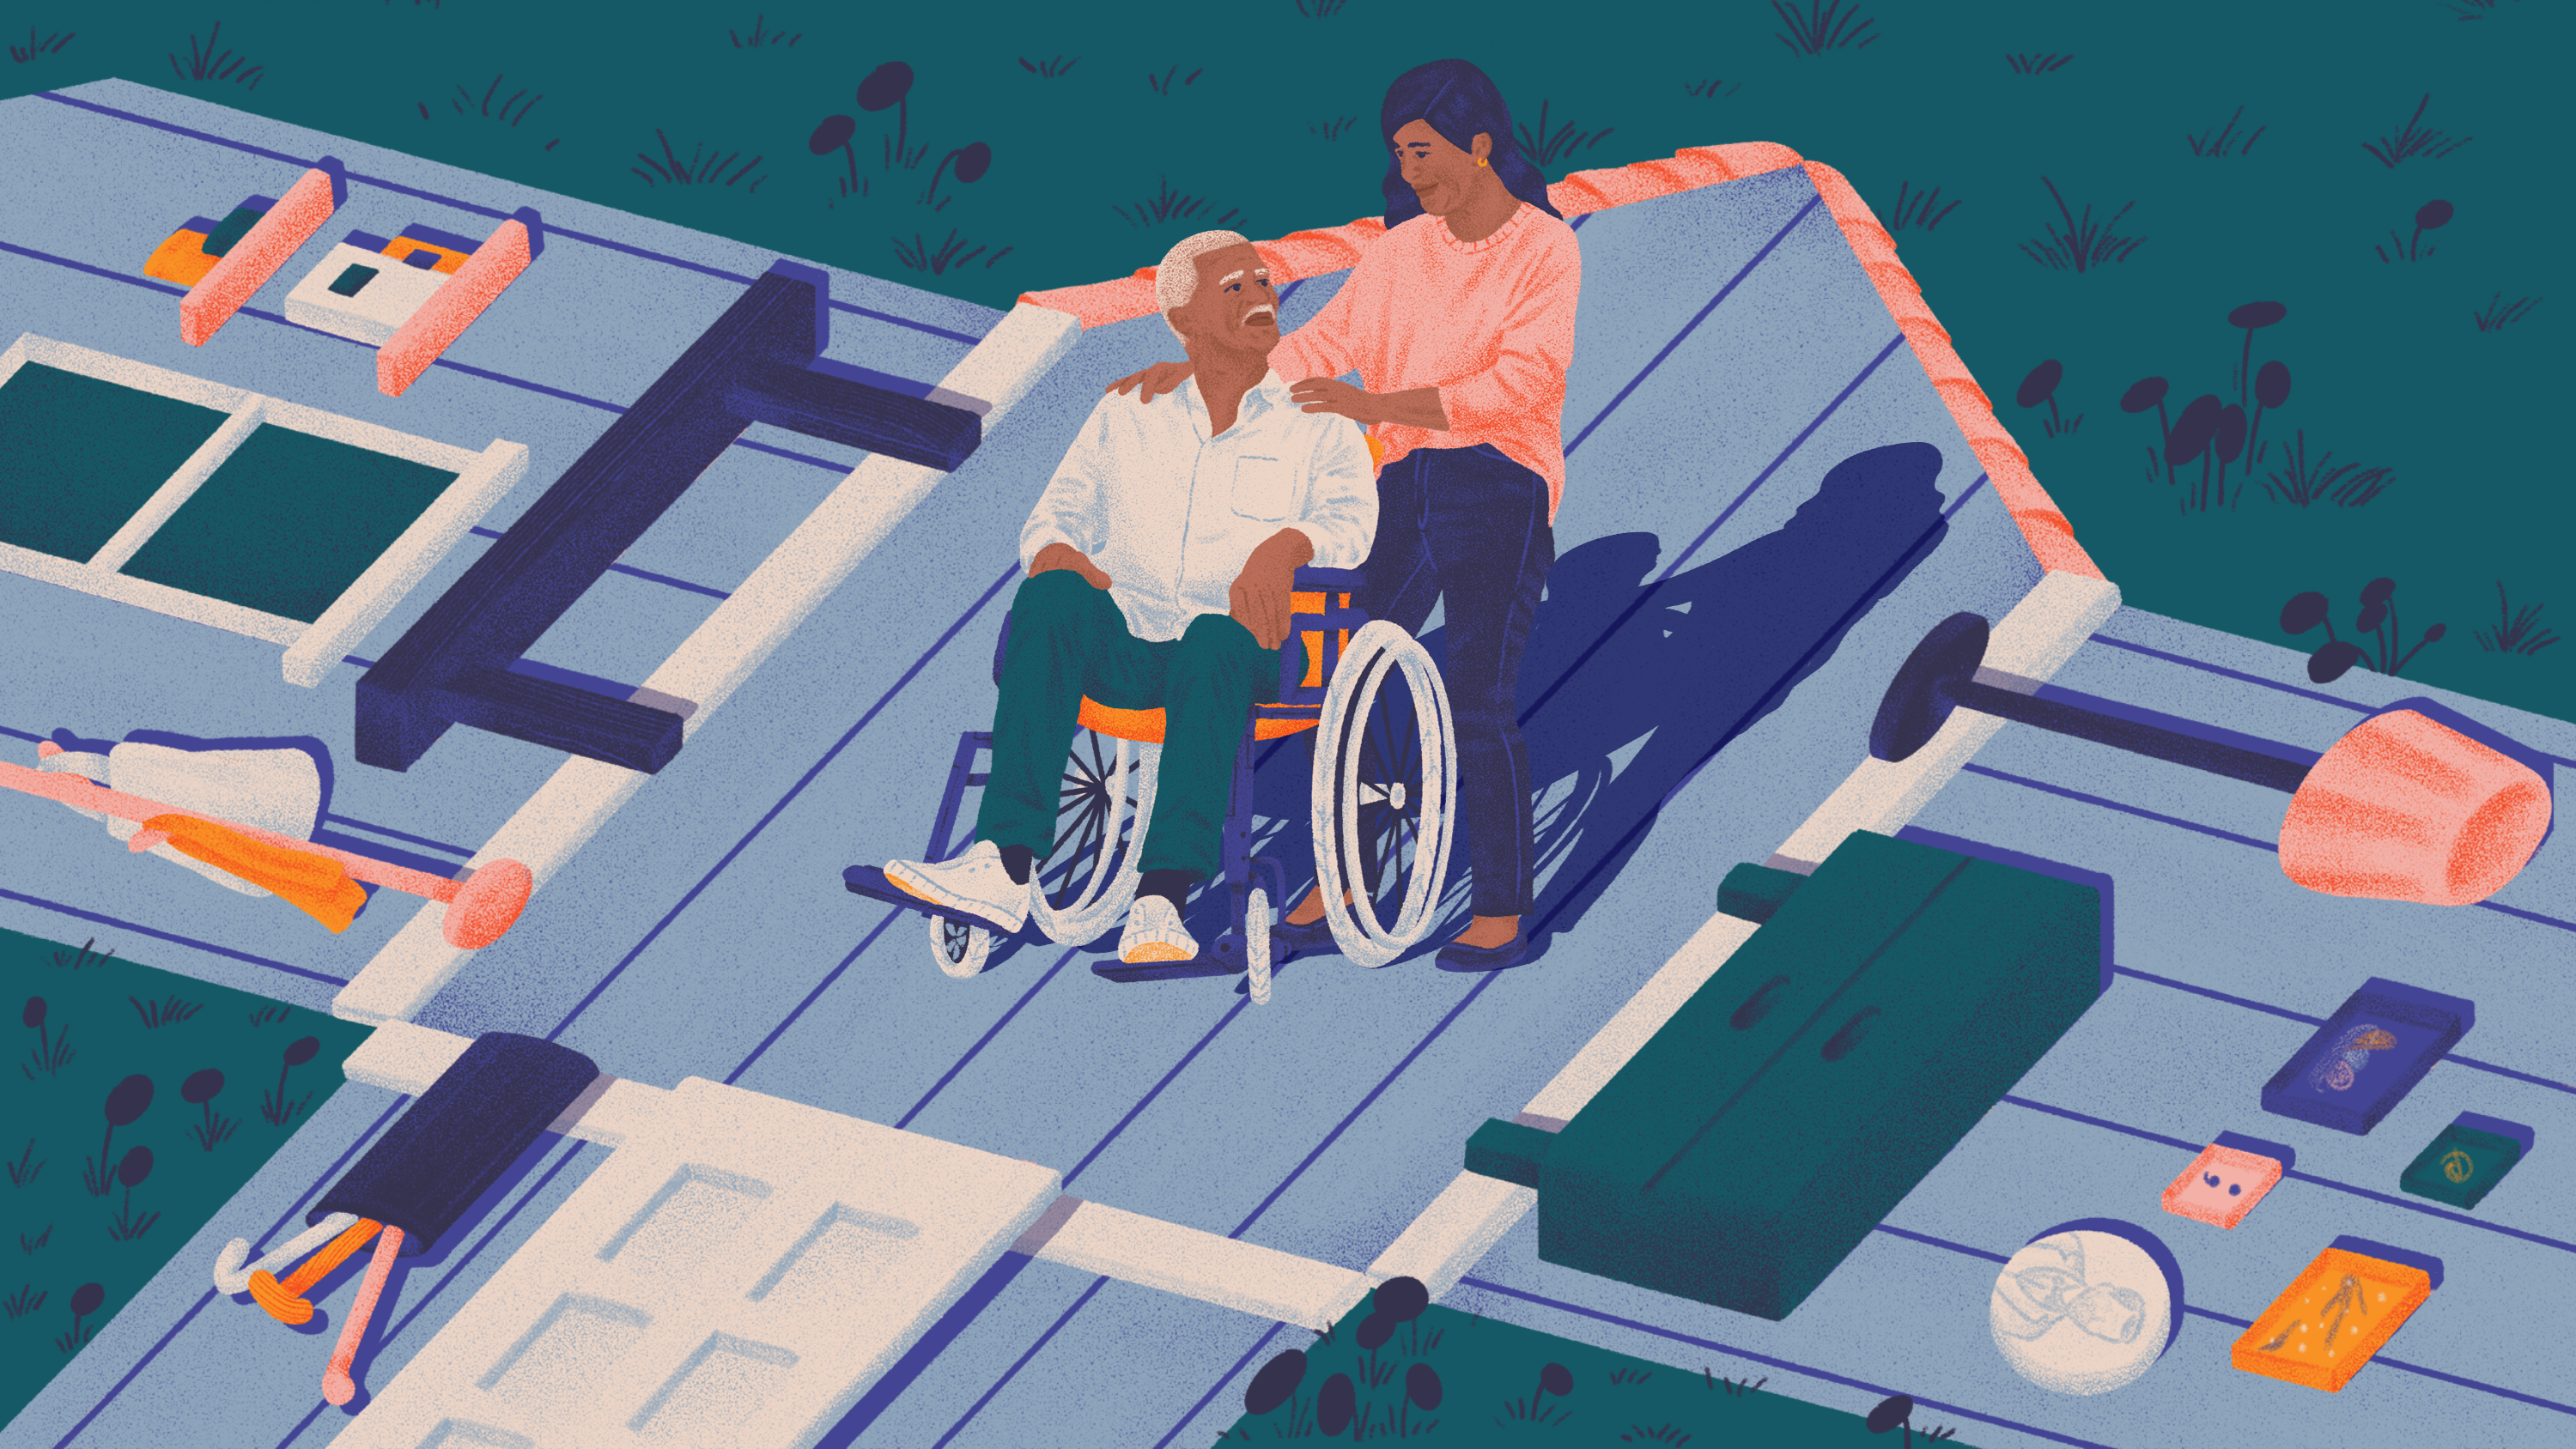 An elderly person in a wheelchair and his caretaker are shown on top of a flattened house